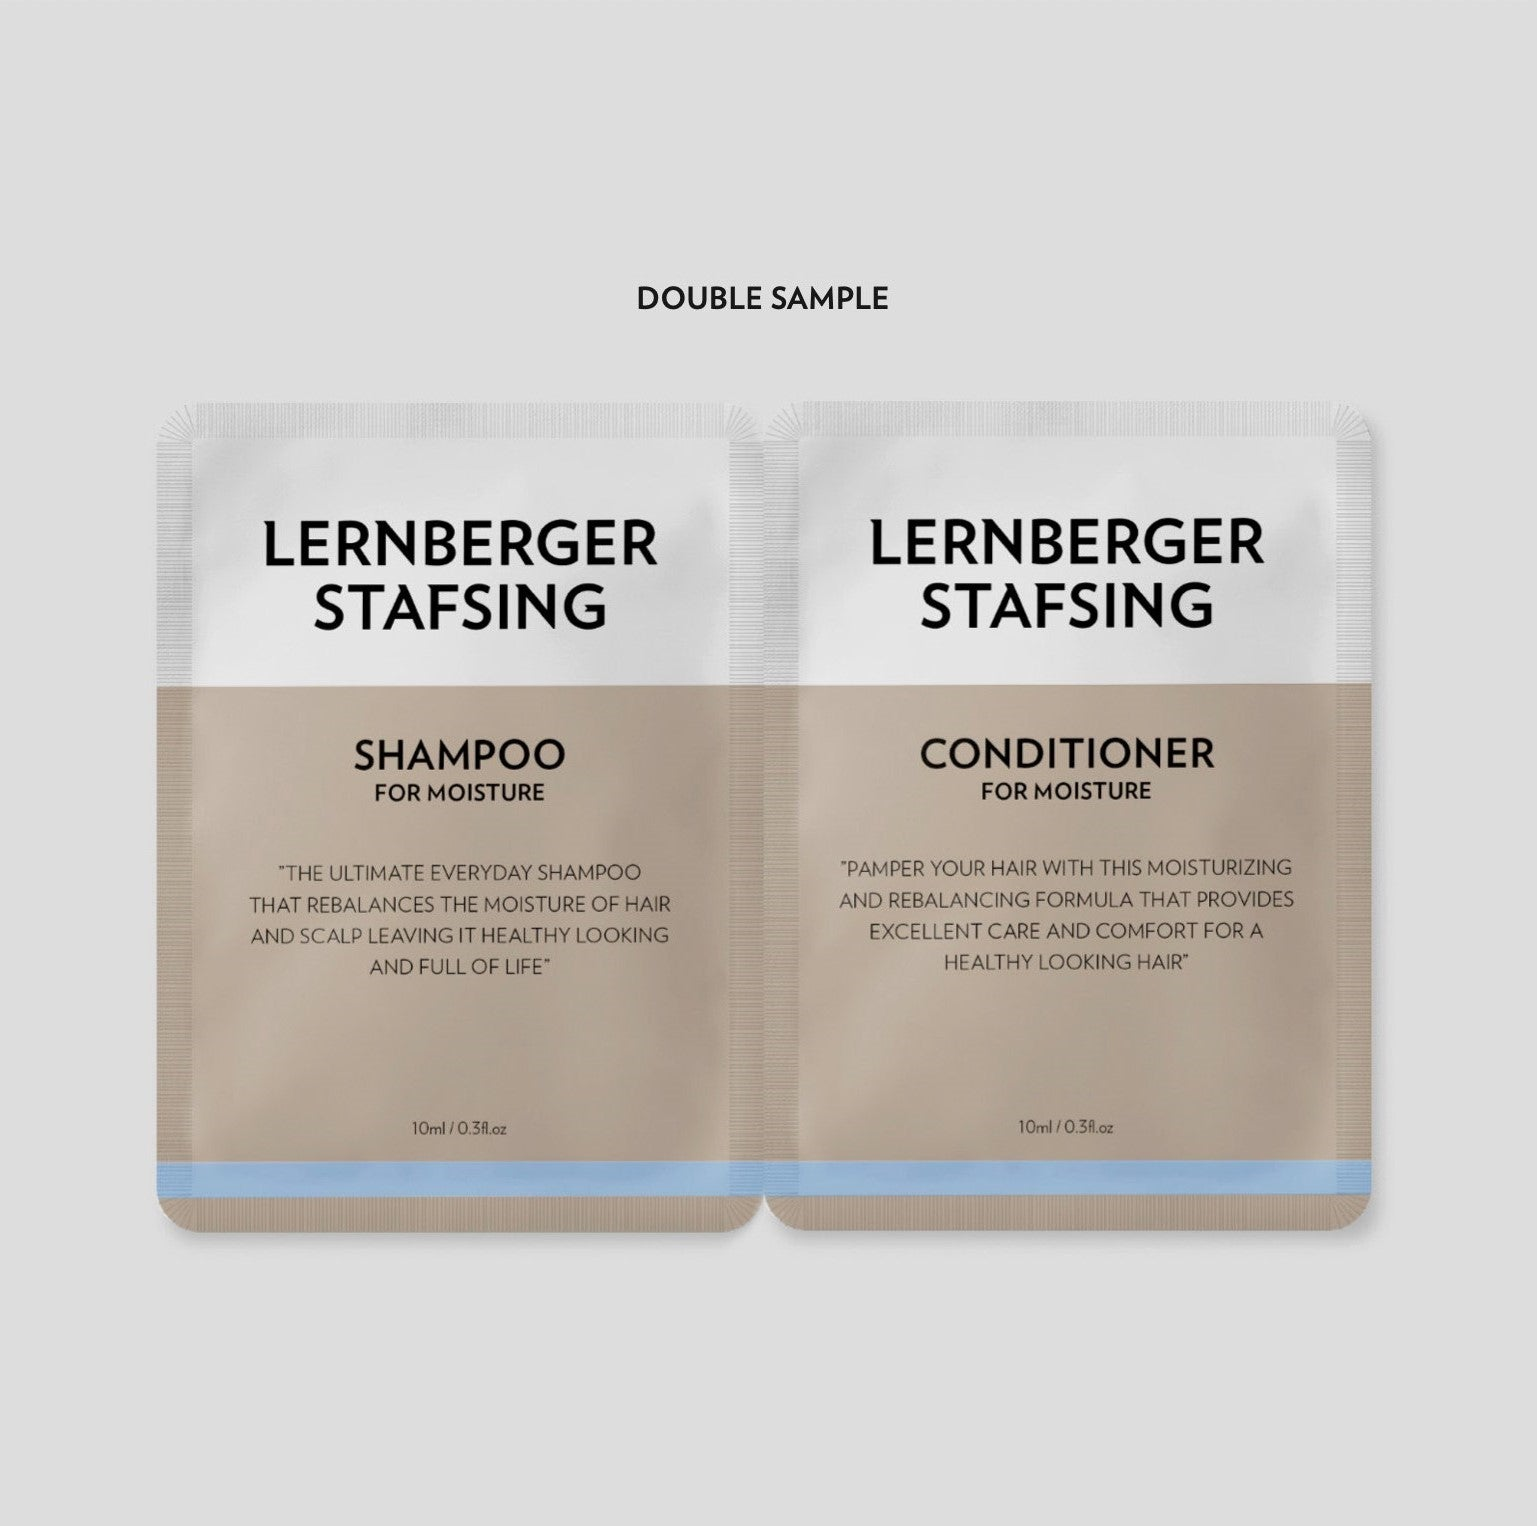 Lernberger Stafsing Conditioner for Moisture (1 * 10ml Sample)